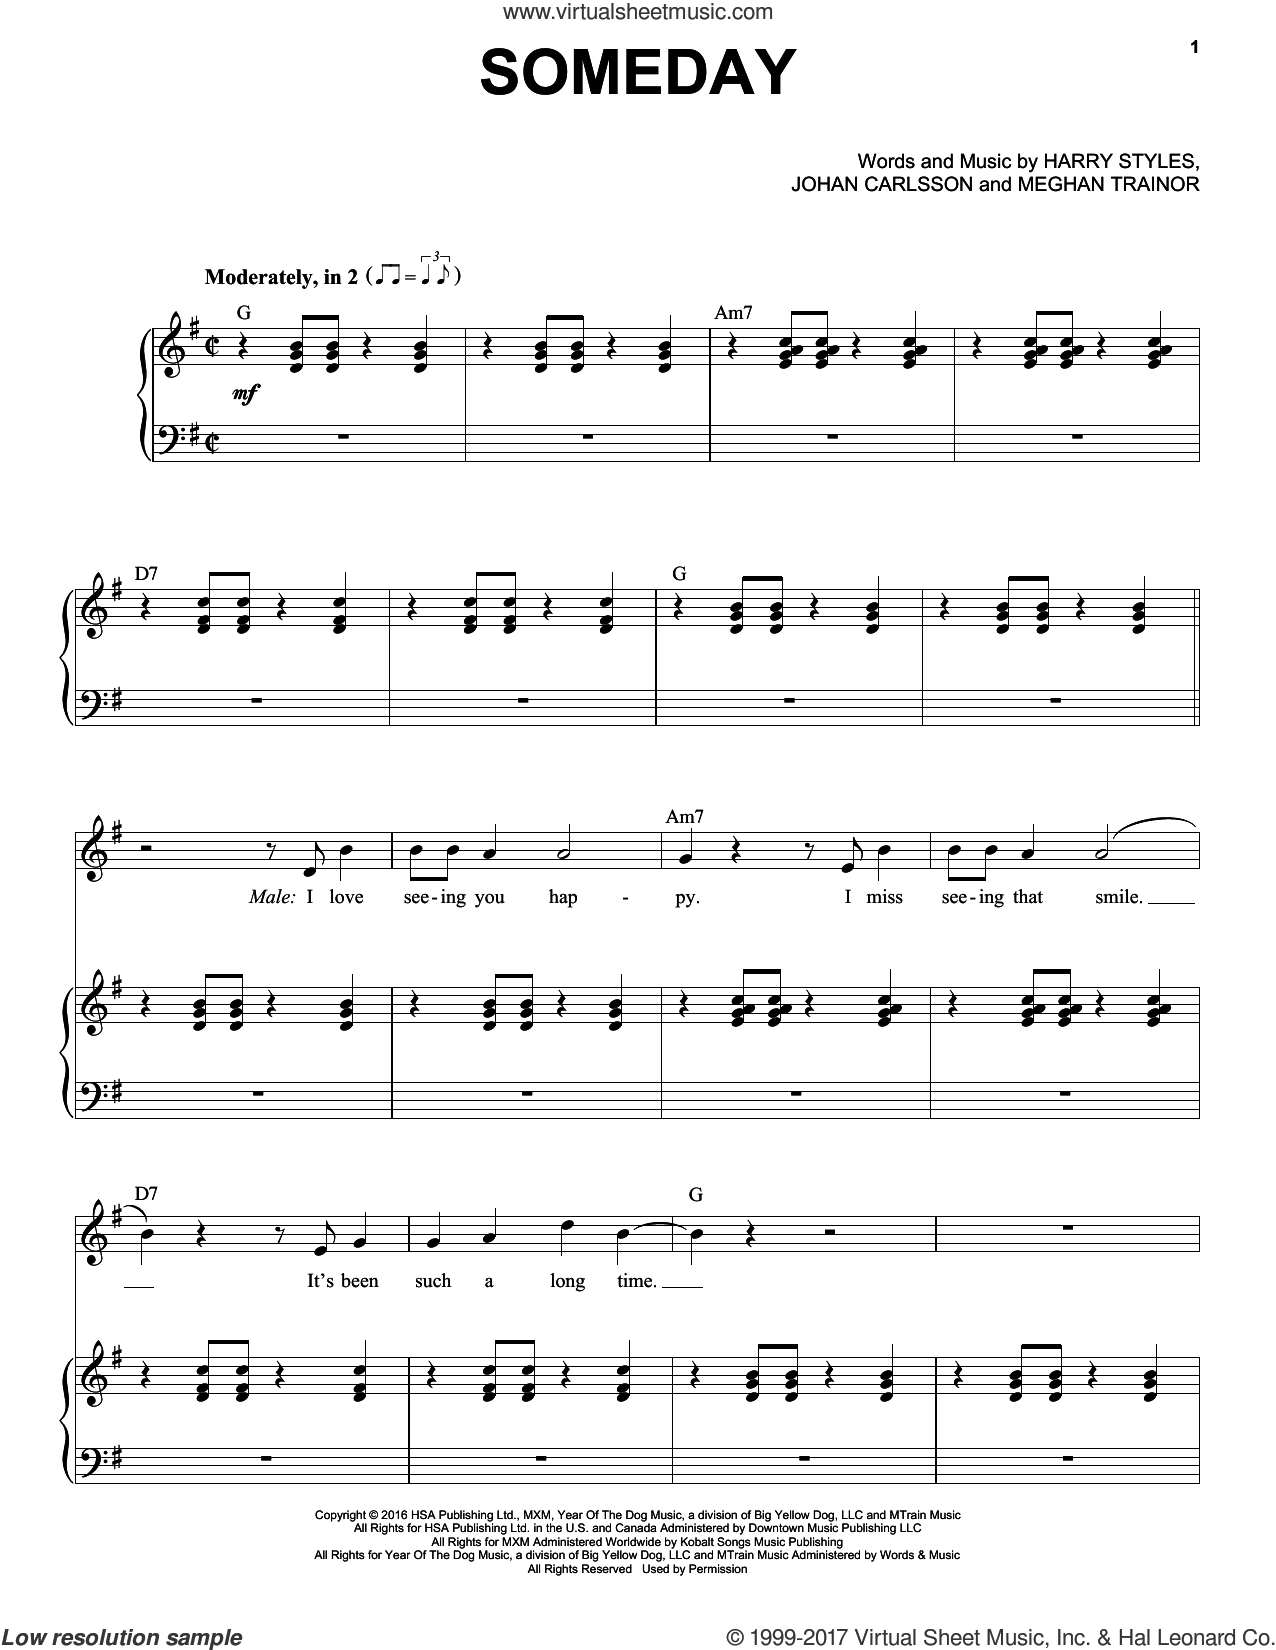 Someday sheet music for voice and piano by Michael Buble featuring Meghan Trainor, Michael Buble, Harry Styles, Johan Carlsson and Meghan Trainor, intermediate skill level